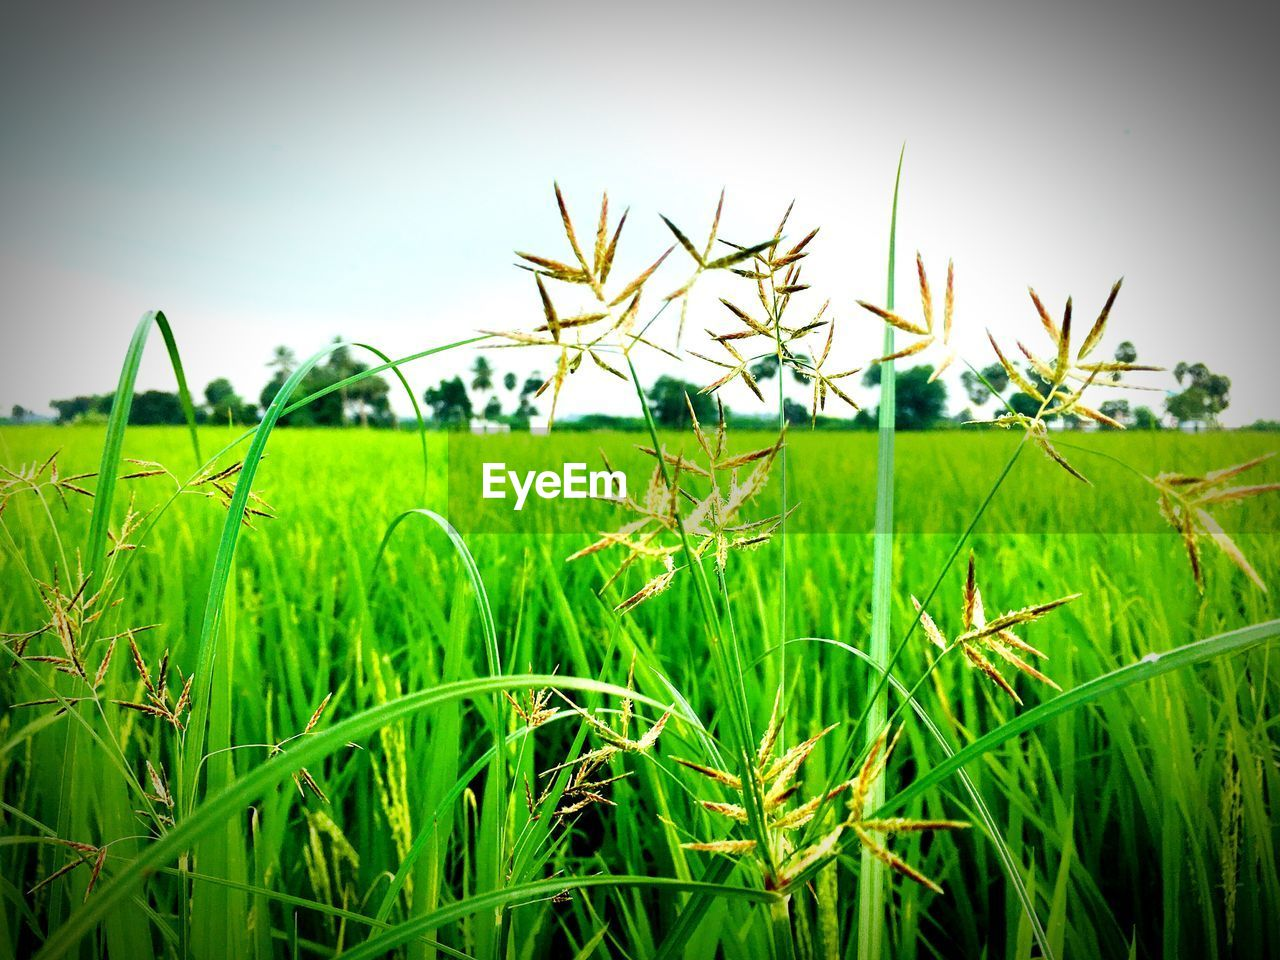 plant, growth, green color, sky, field, land, grass, nature, beauty in nature, tranquility, tranquil scene, landscape, day, no people, scenics - nature, environment, clear sky, close-up, selective focus, outdoors, blade of grass, surface level